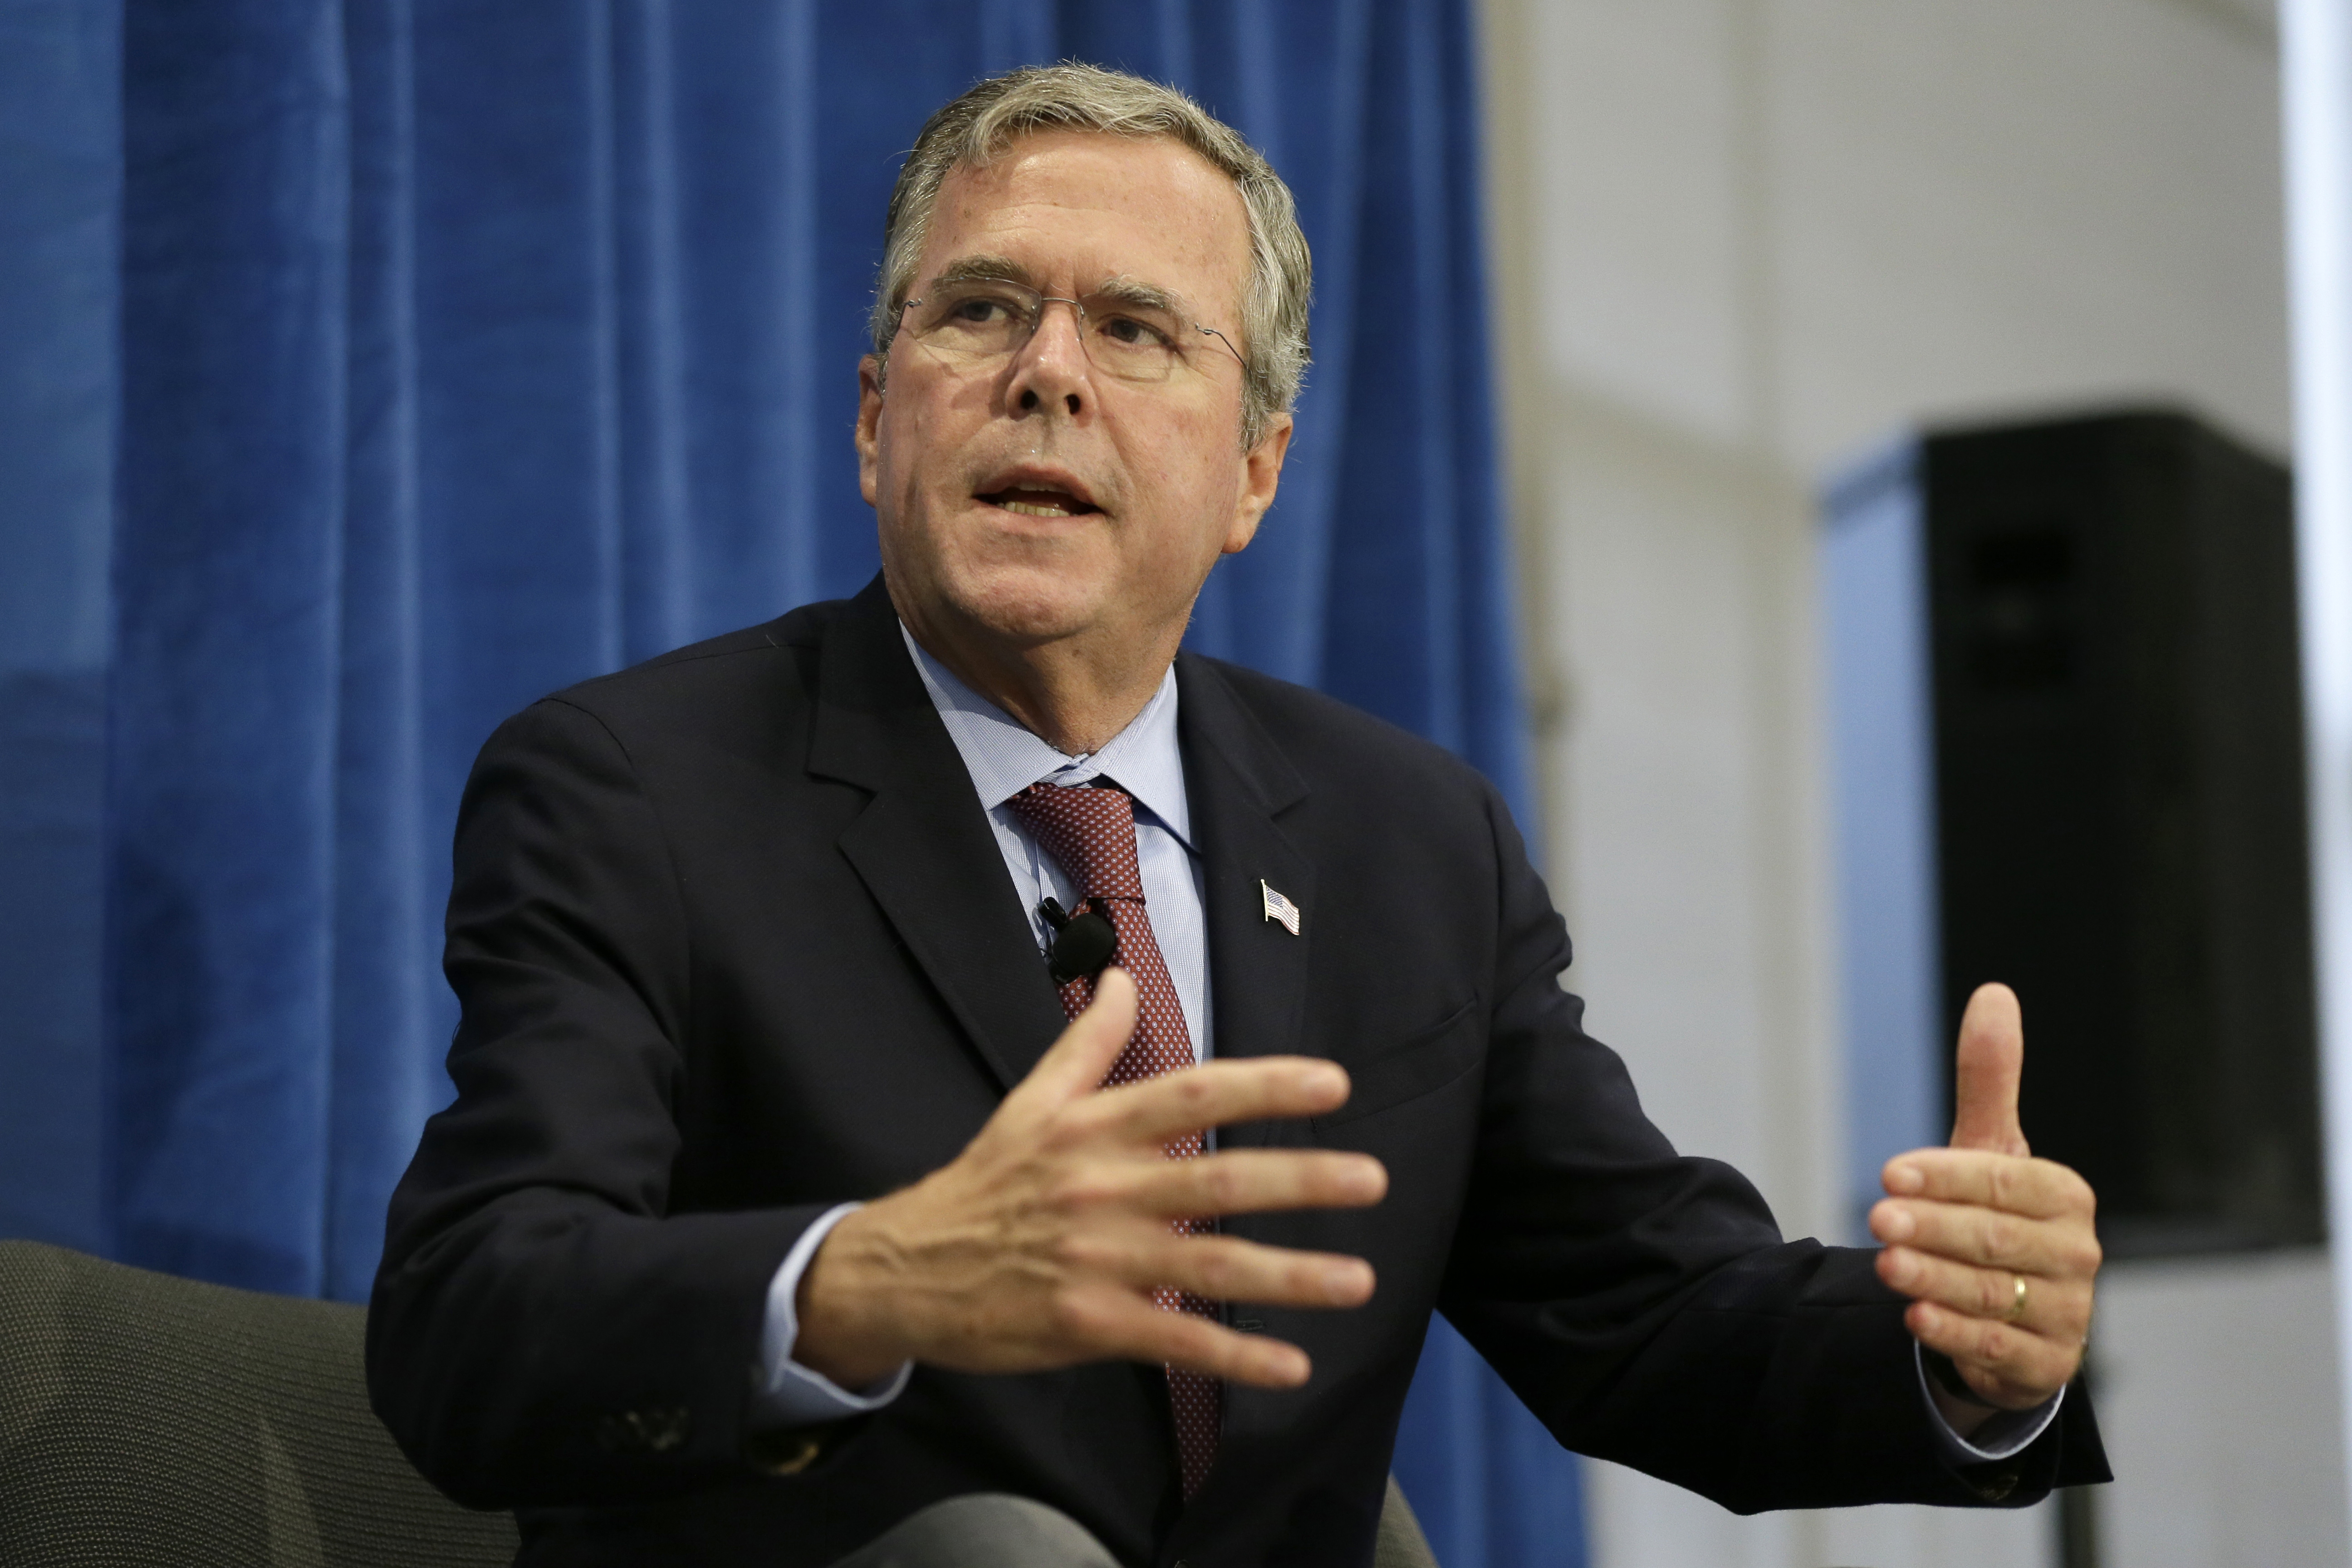 Republican presidential candidate former Fla. Gov. Jeb Bush speaks during a forum sponsored by Americans for Peace, Prosperity and Security at St. Ambrose University in Davenport, Iowa on Aug. 13, 2015.